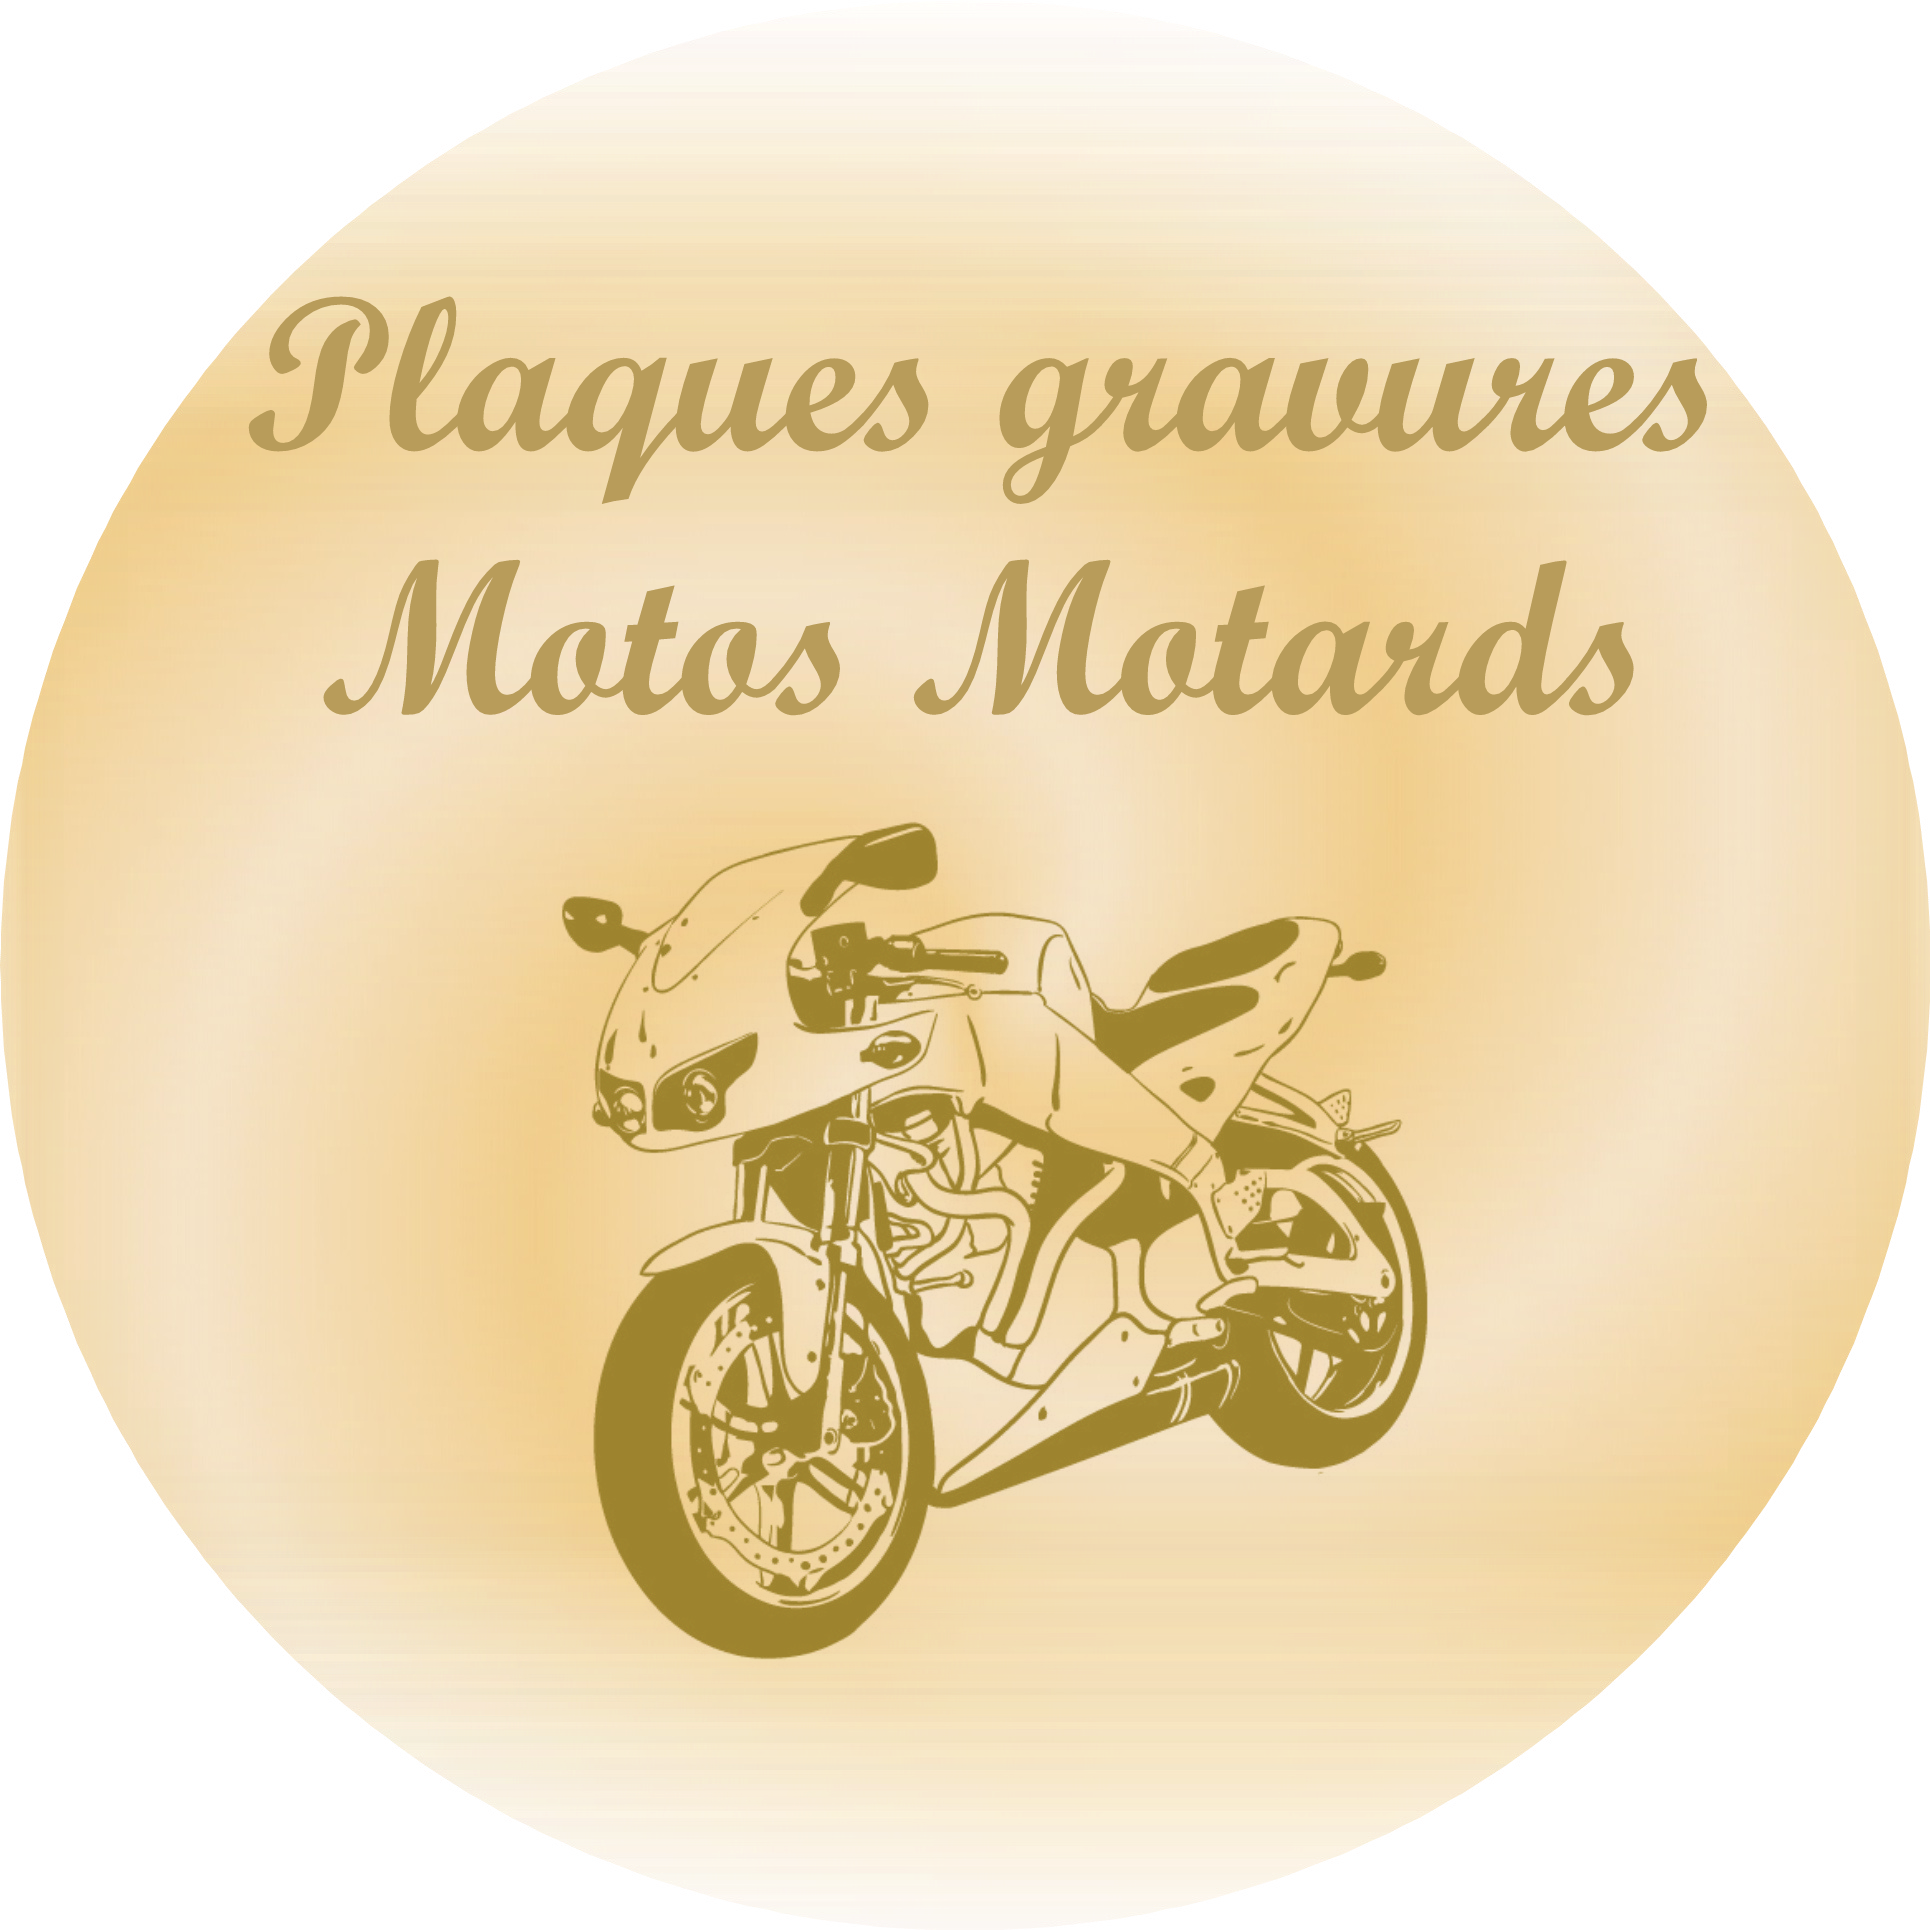 Motos Motards plaques funeraires gravees or